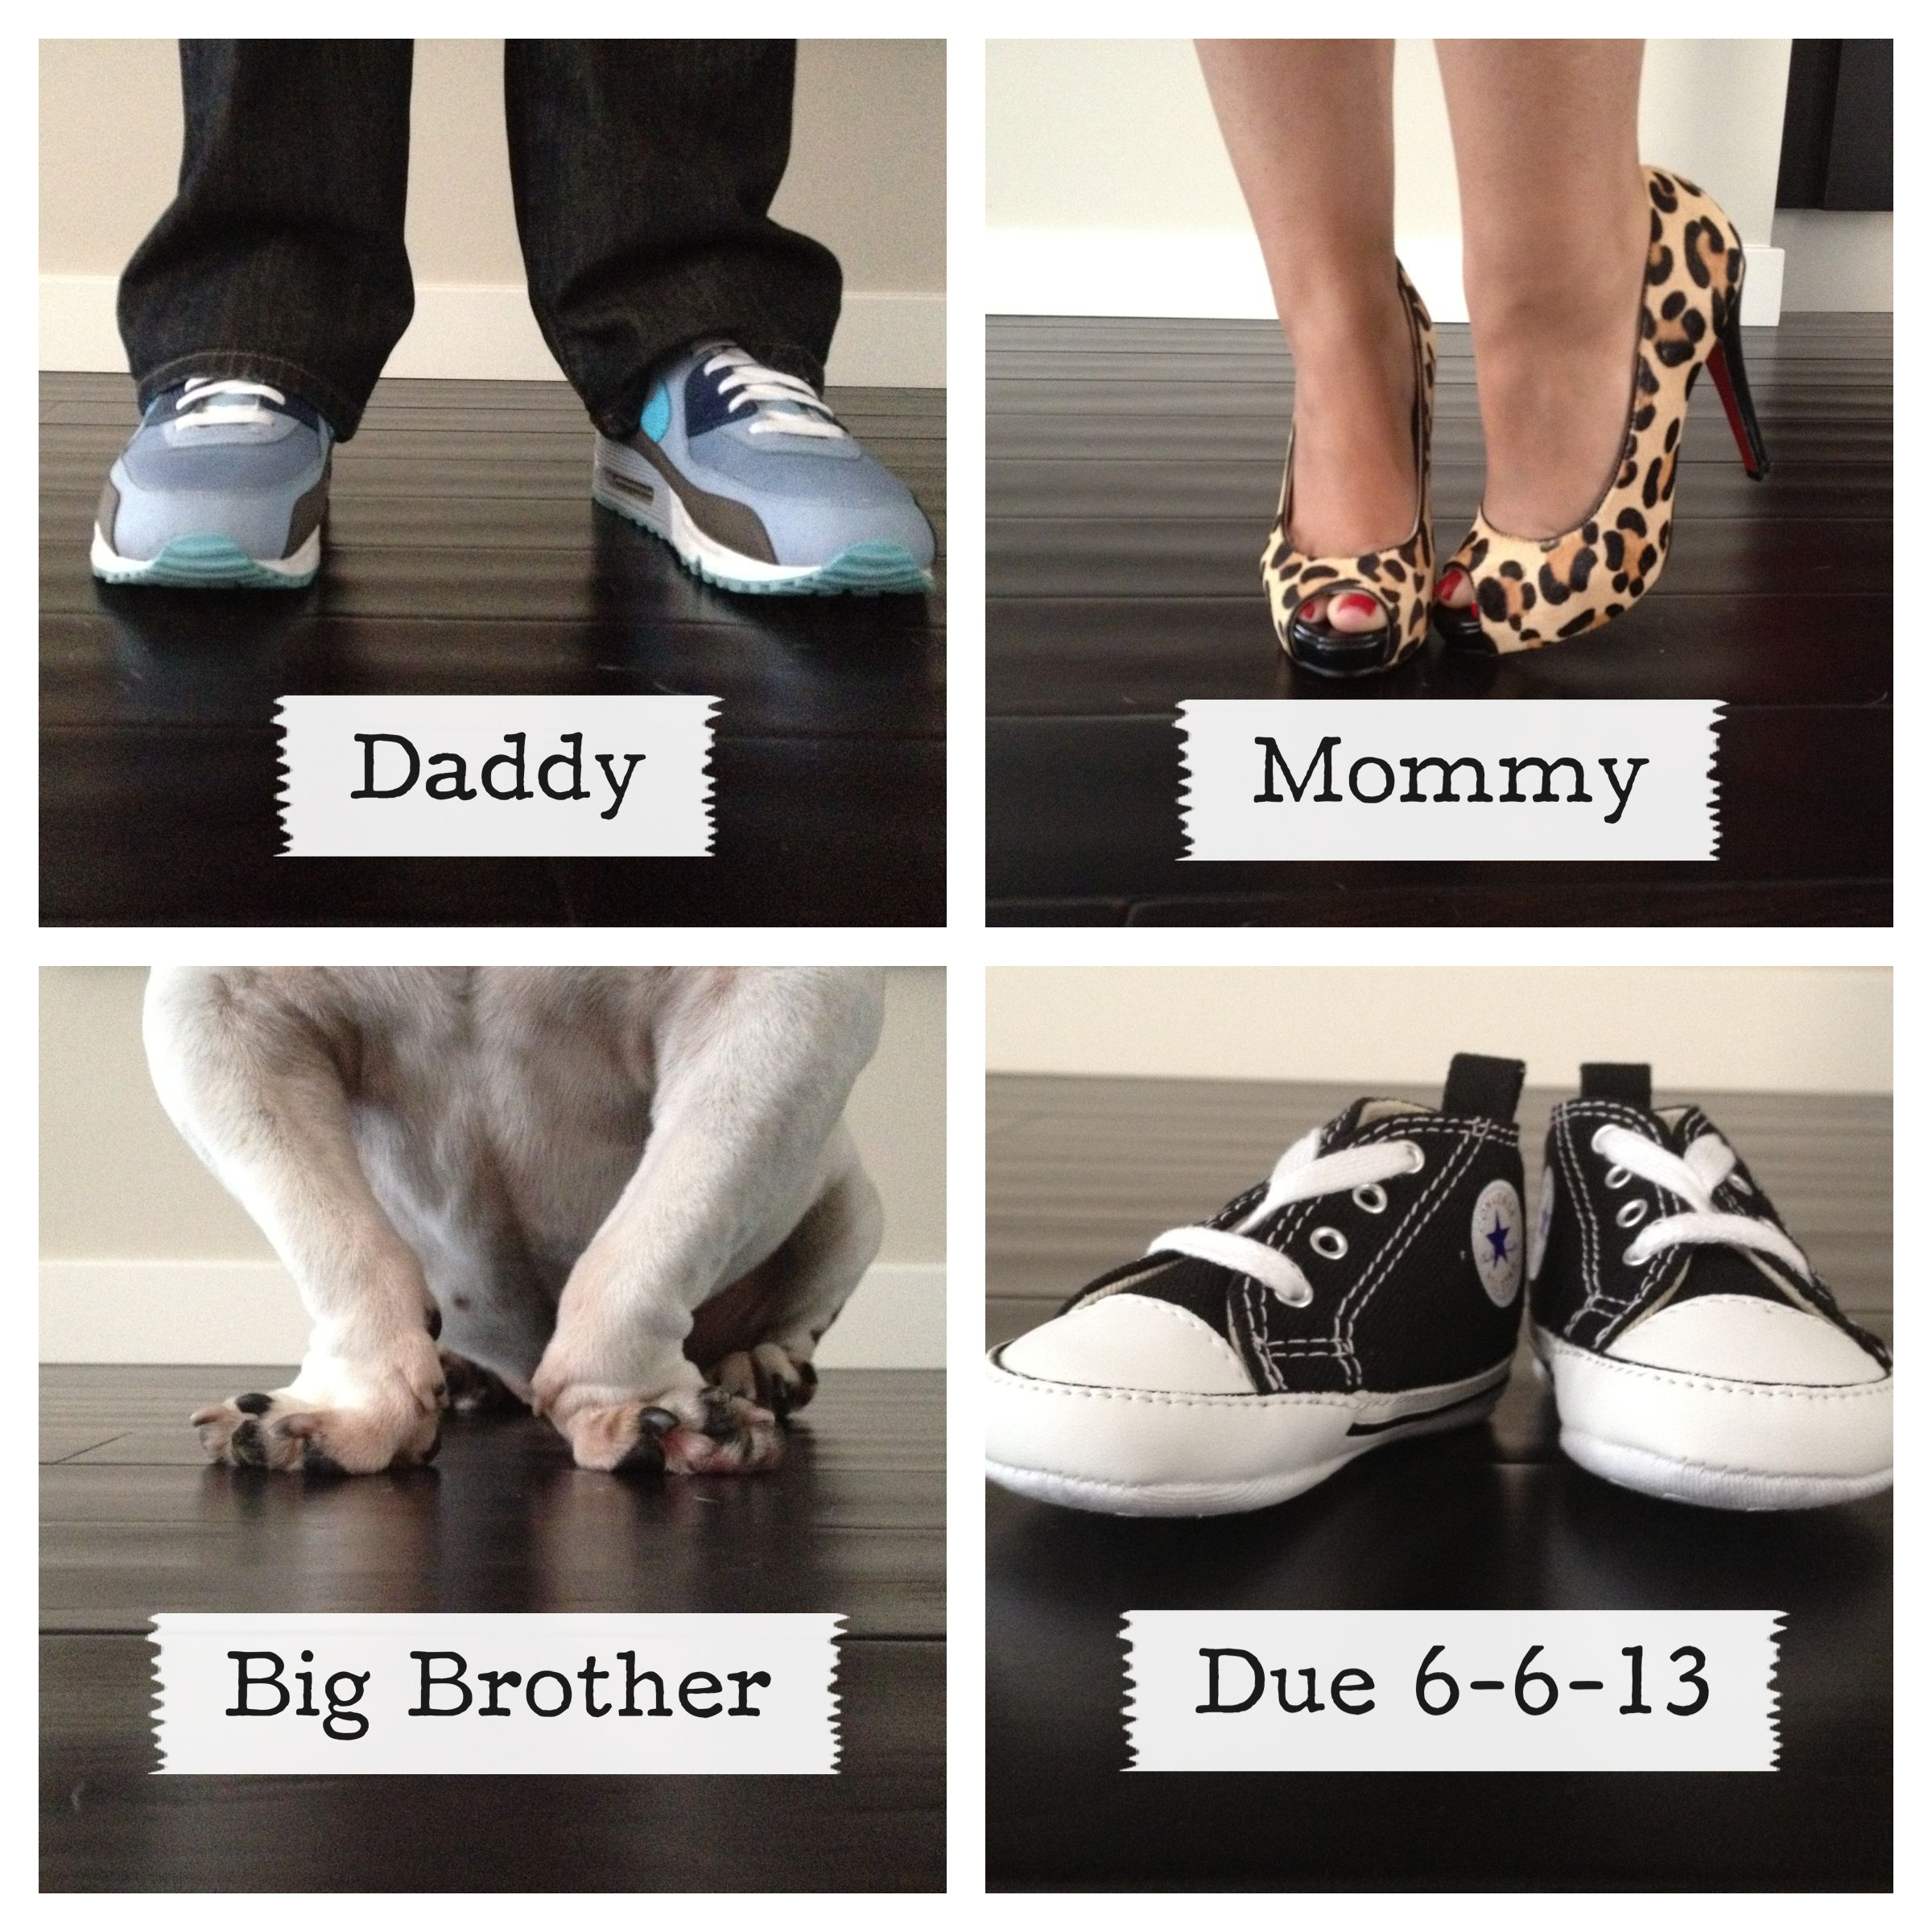 Our Baby Announcement..Perfect! I love shoes!